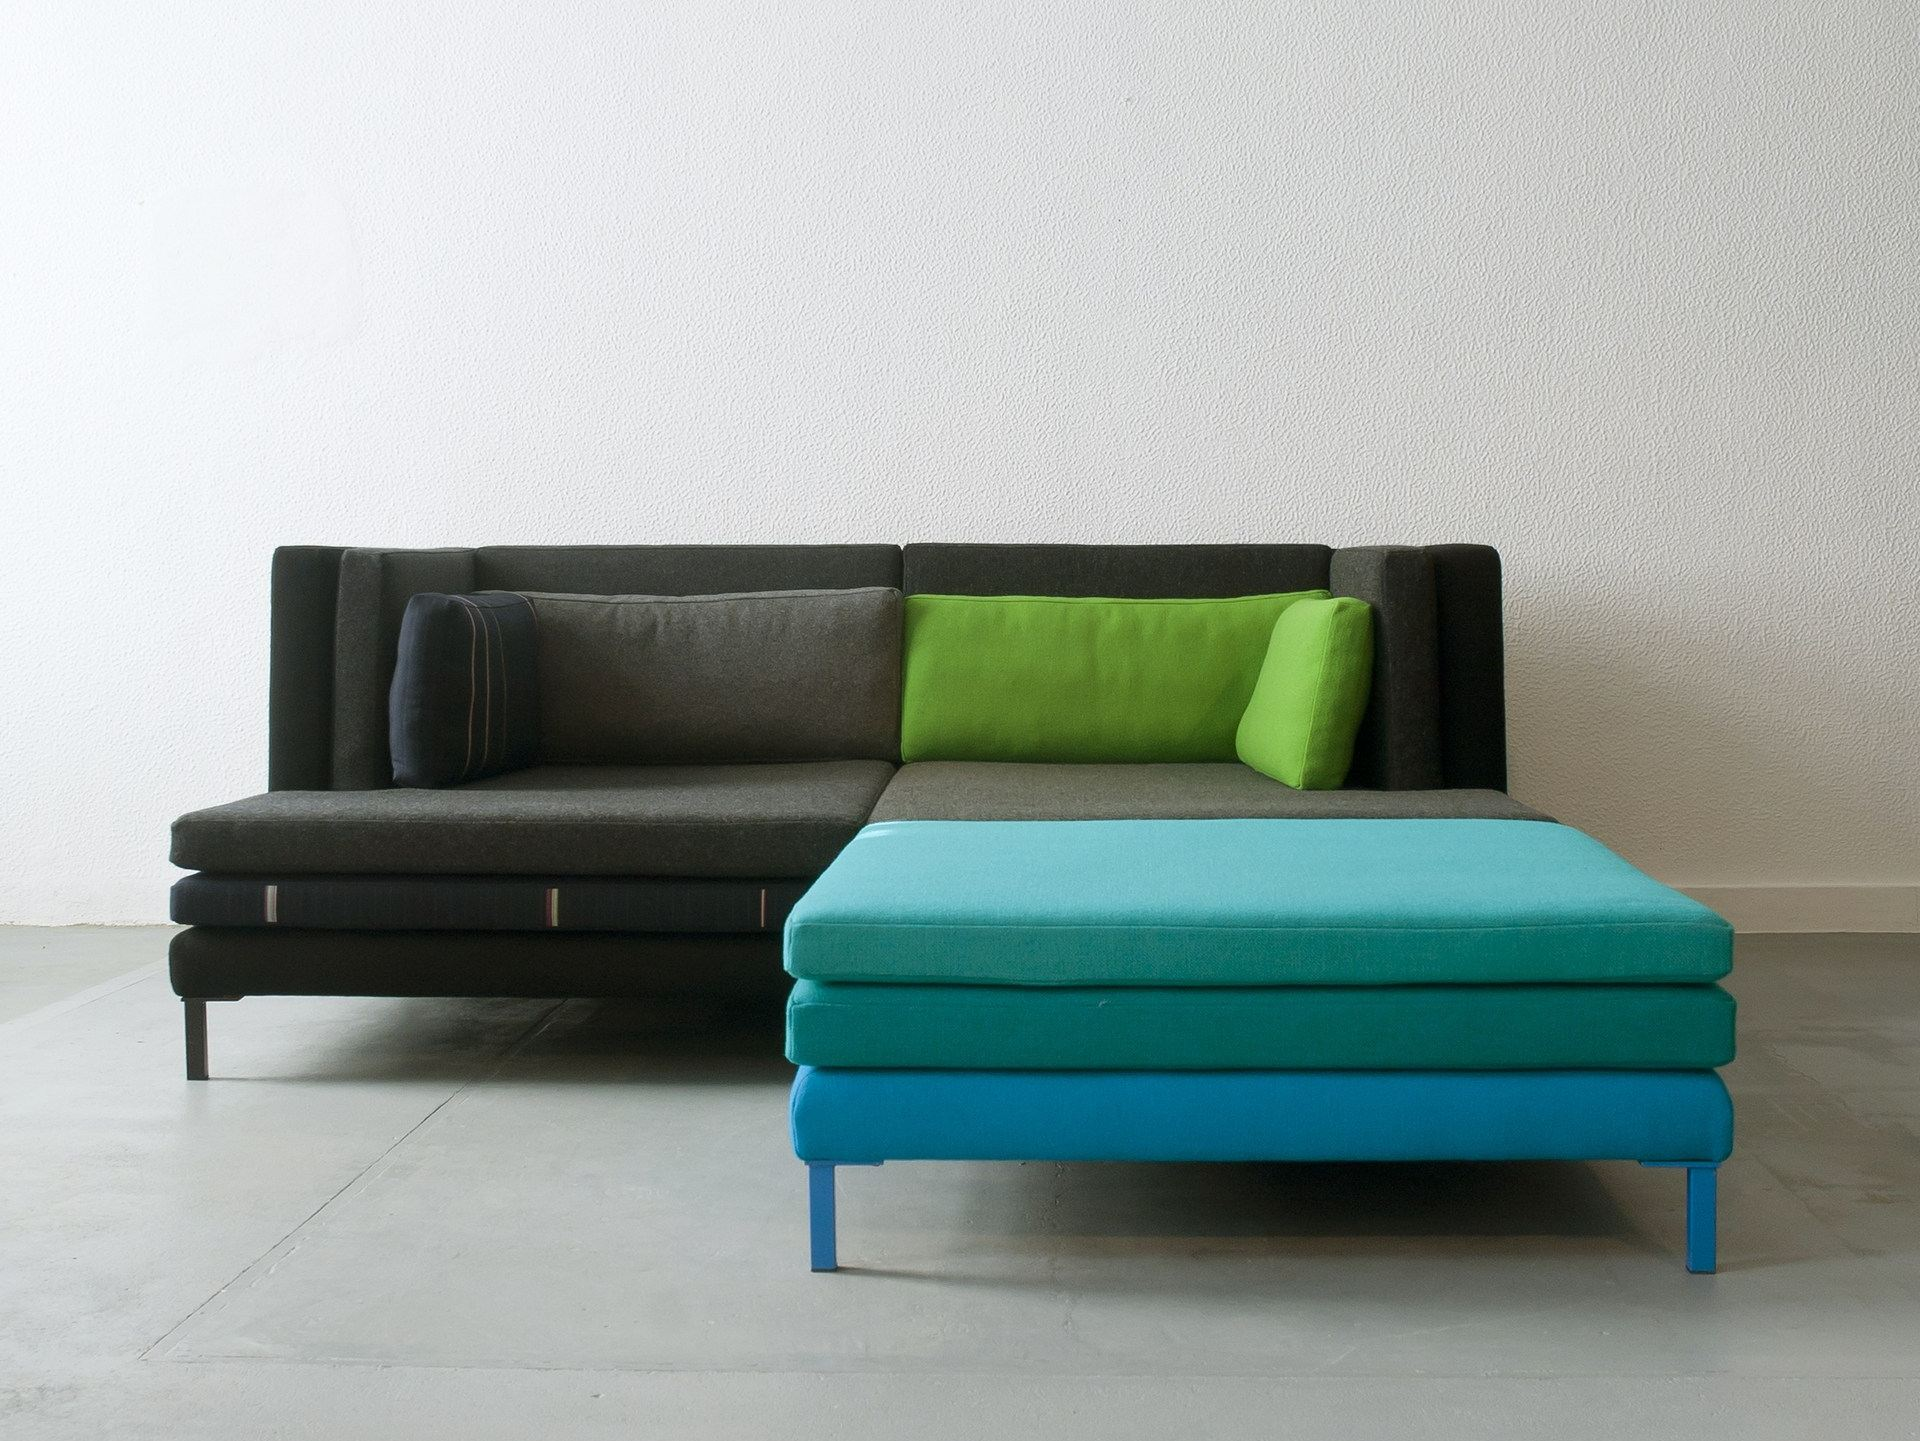 Canap modulable en tissu layer by branca lisboa design for Canape modulable